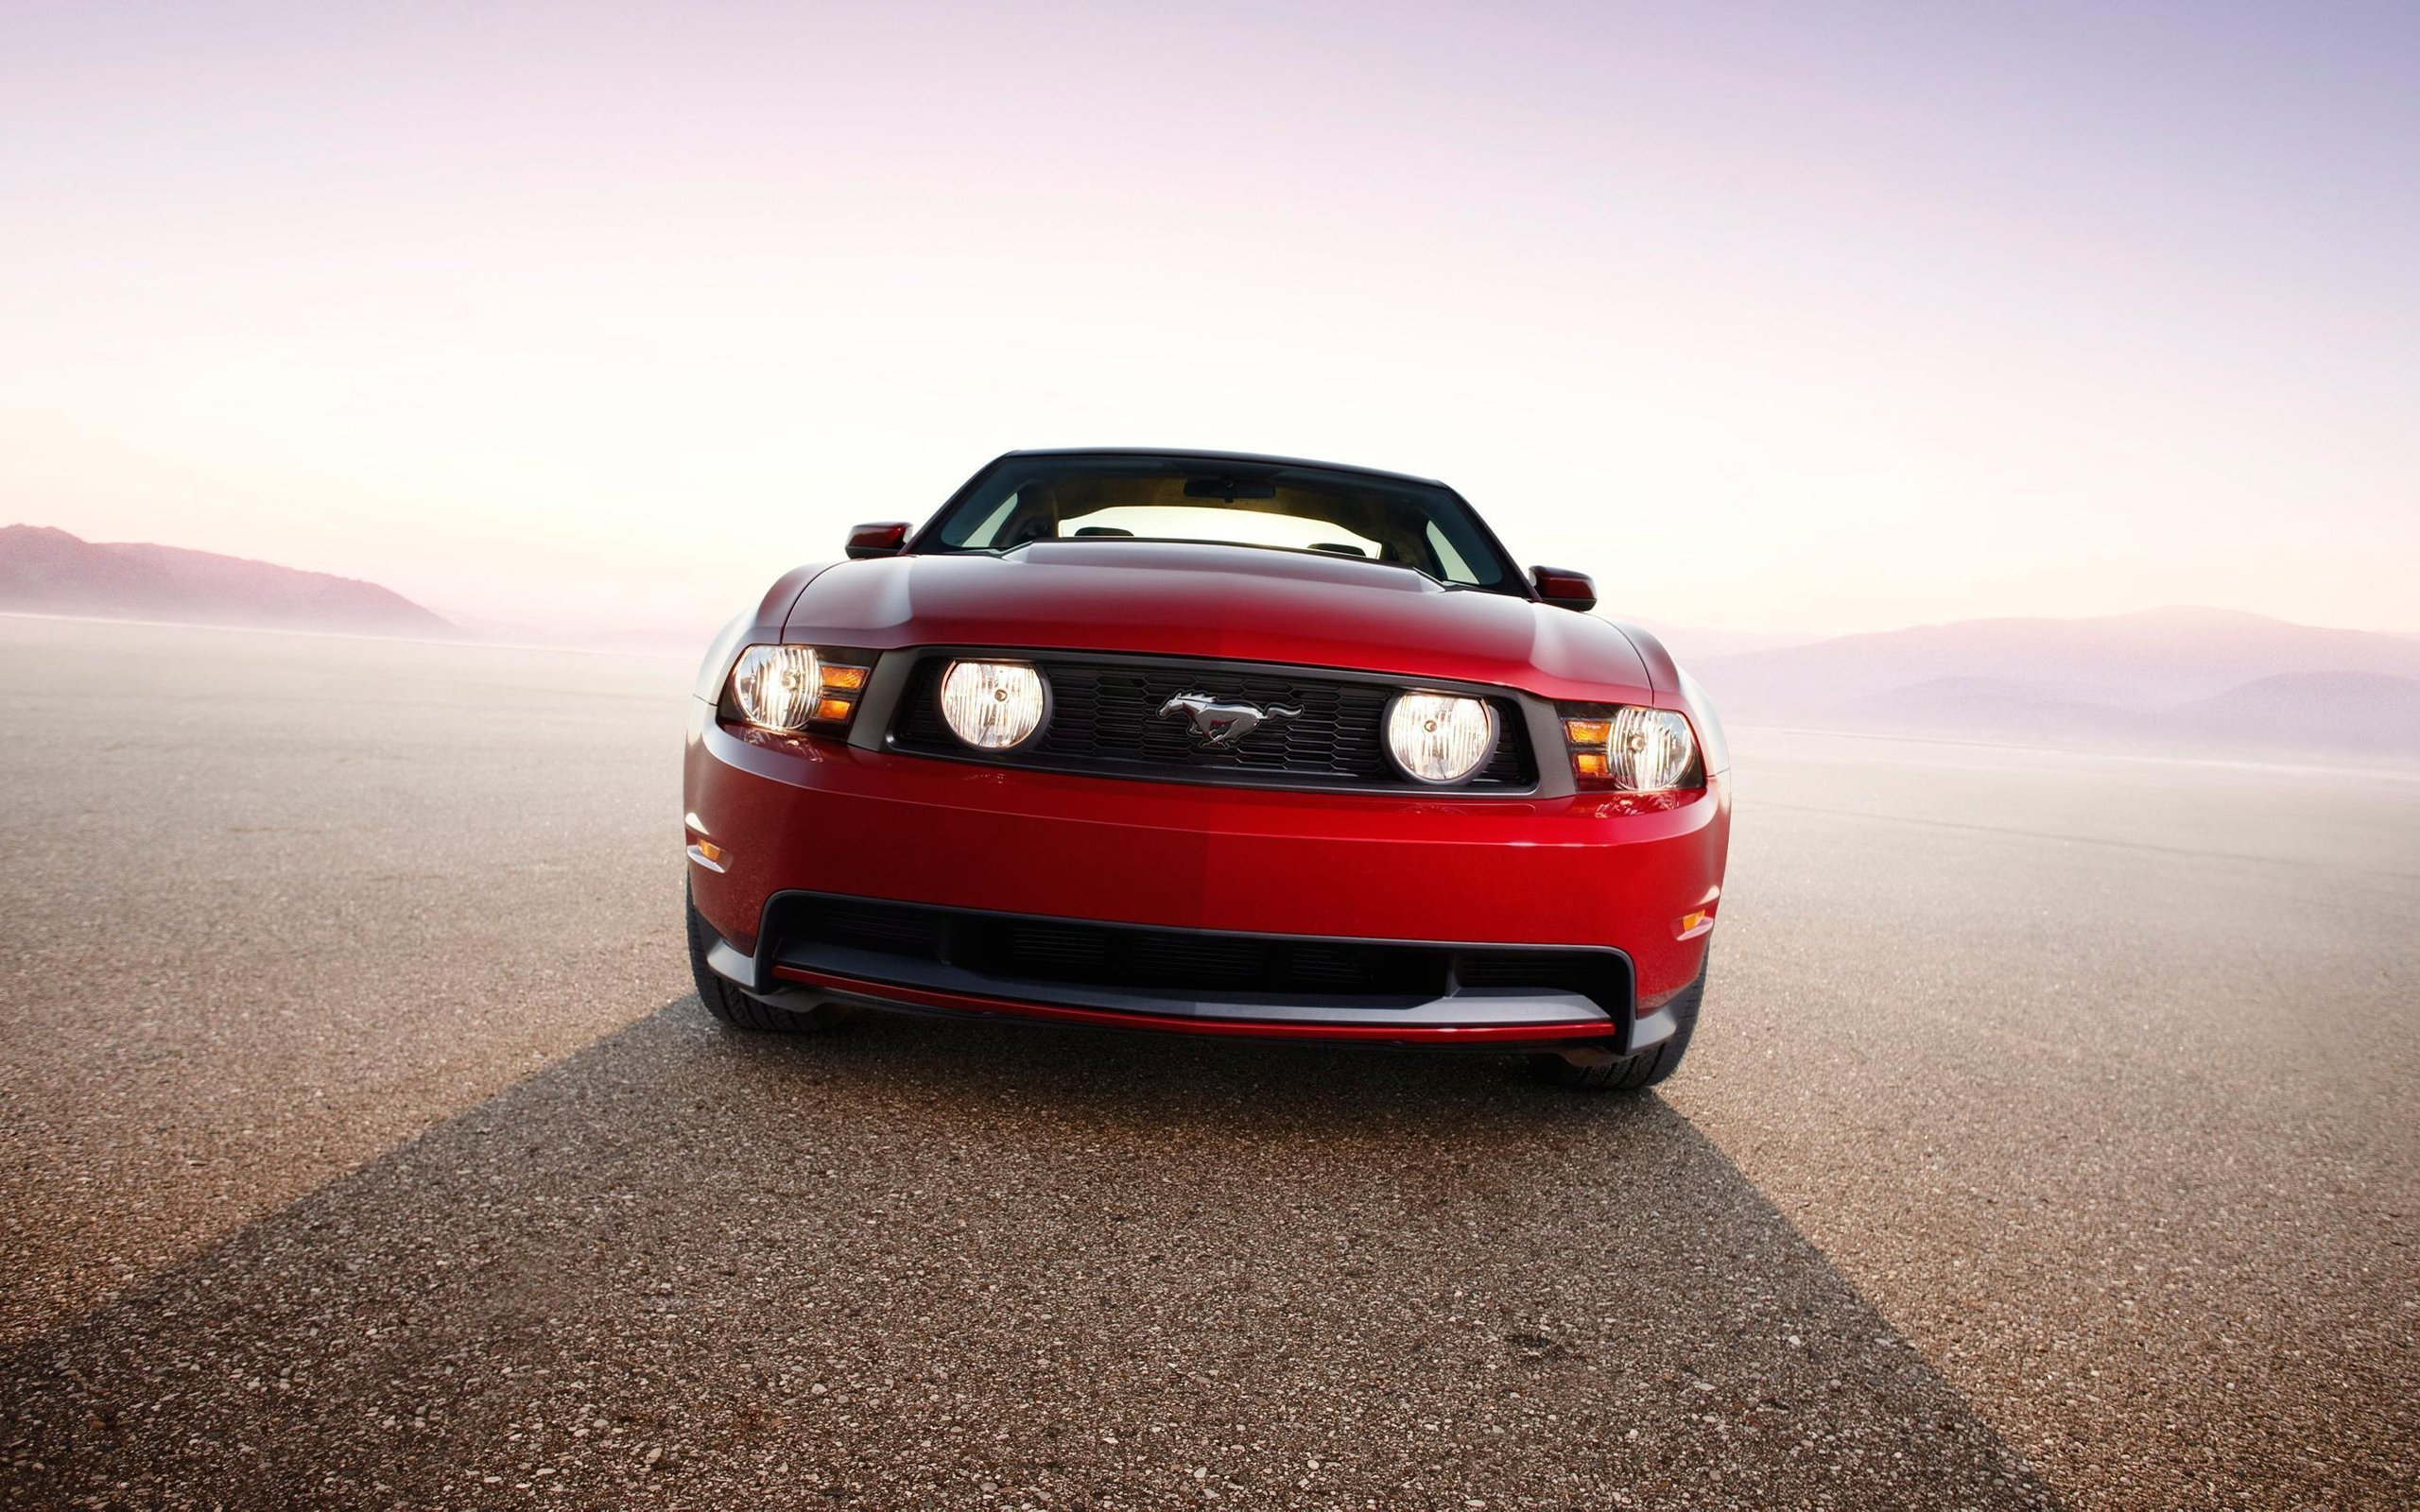 Ford Mustang GT - 2560x1600